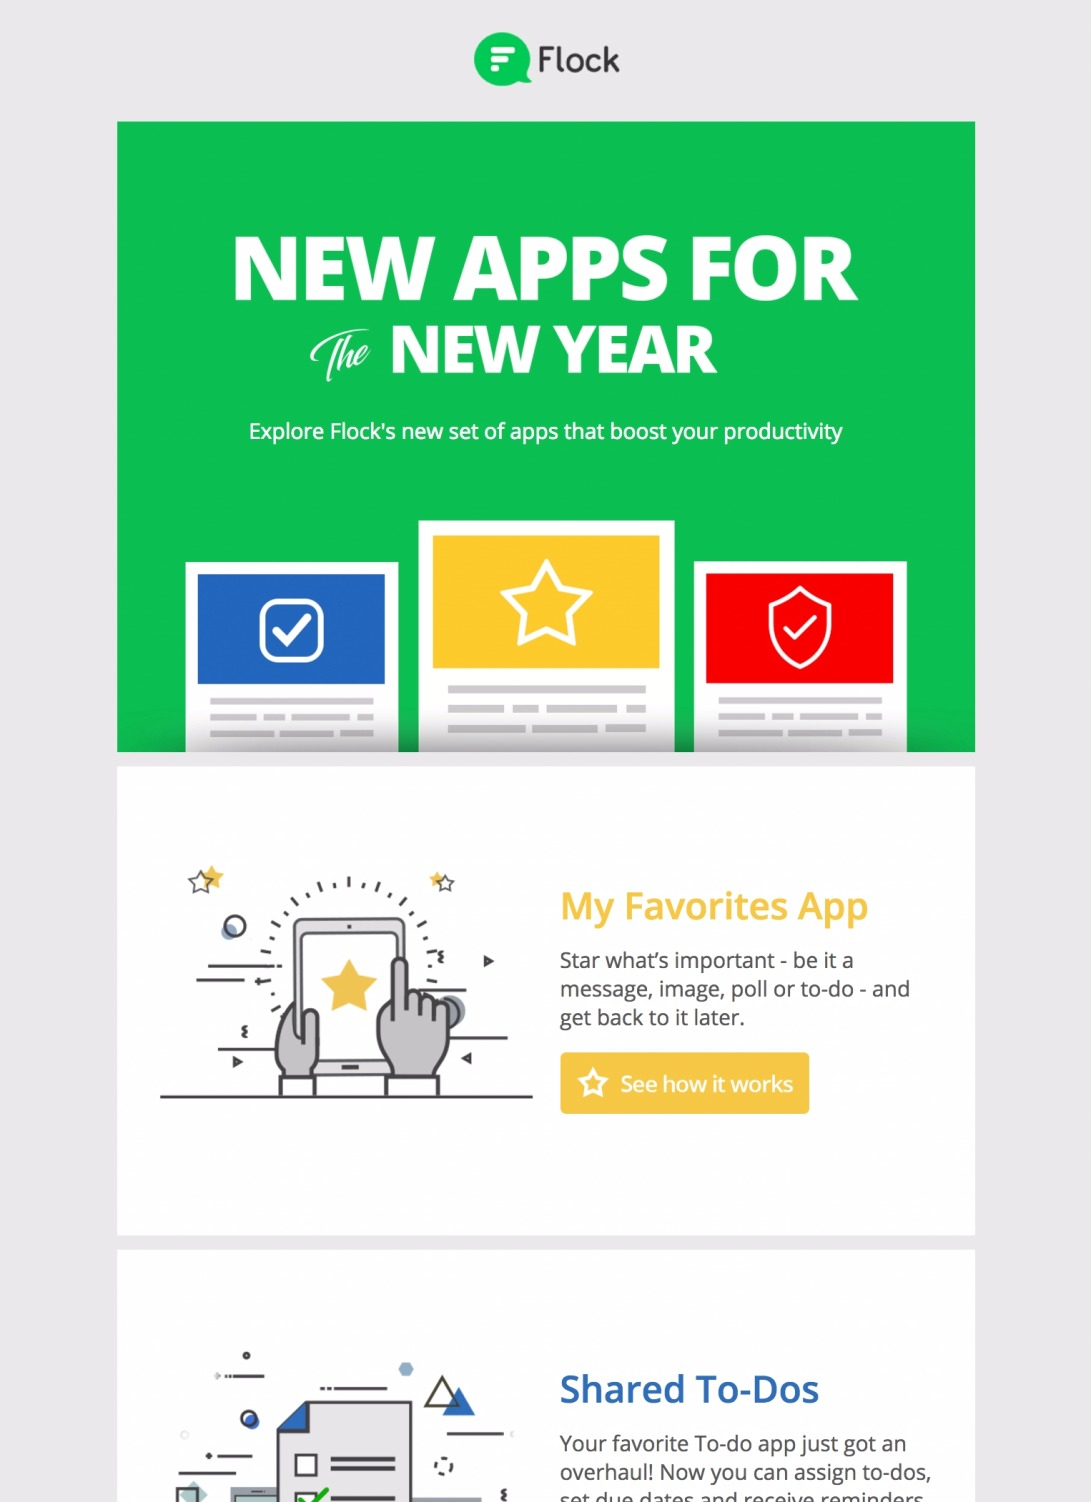 New Apps for the New Year 🎁